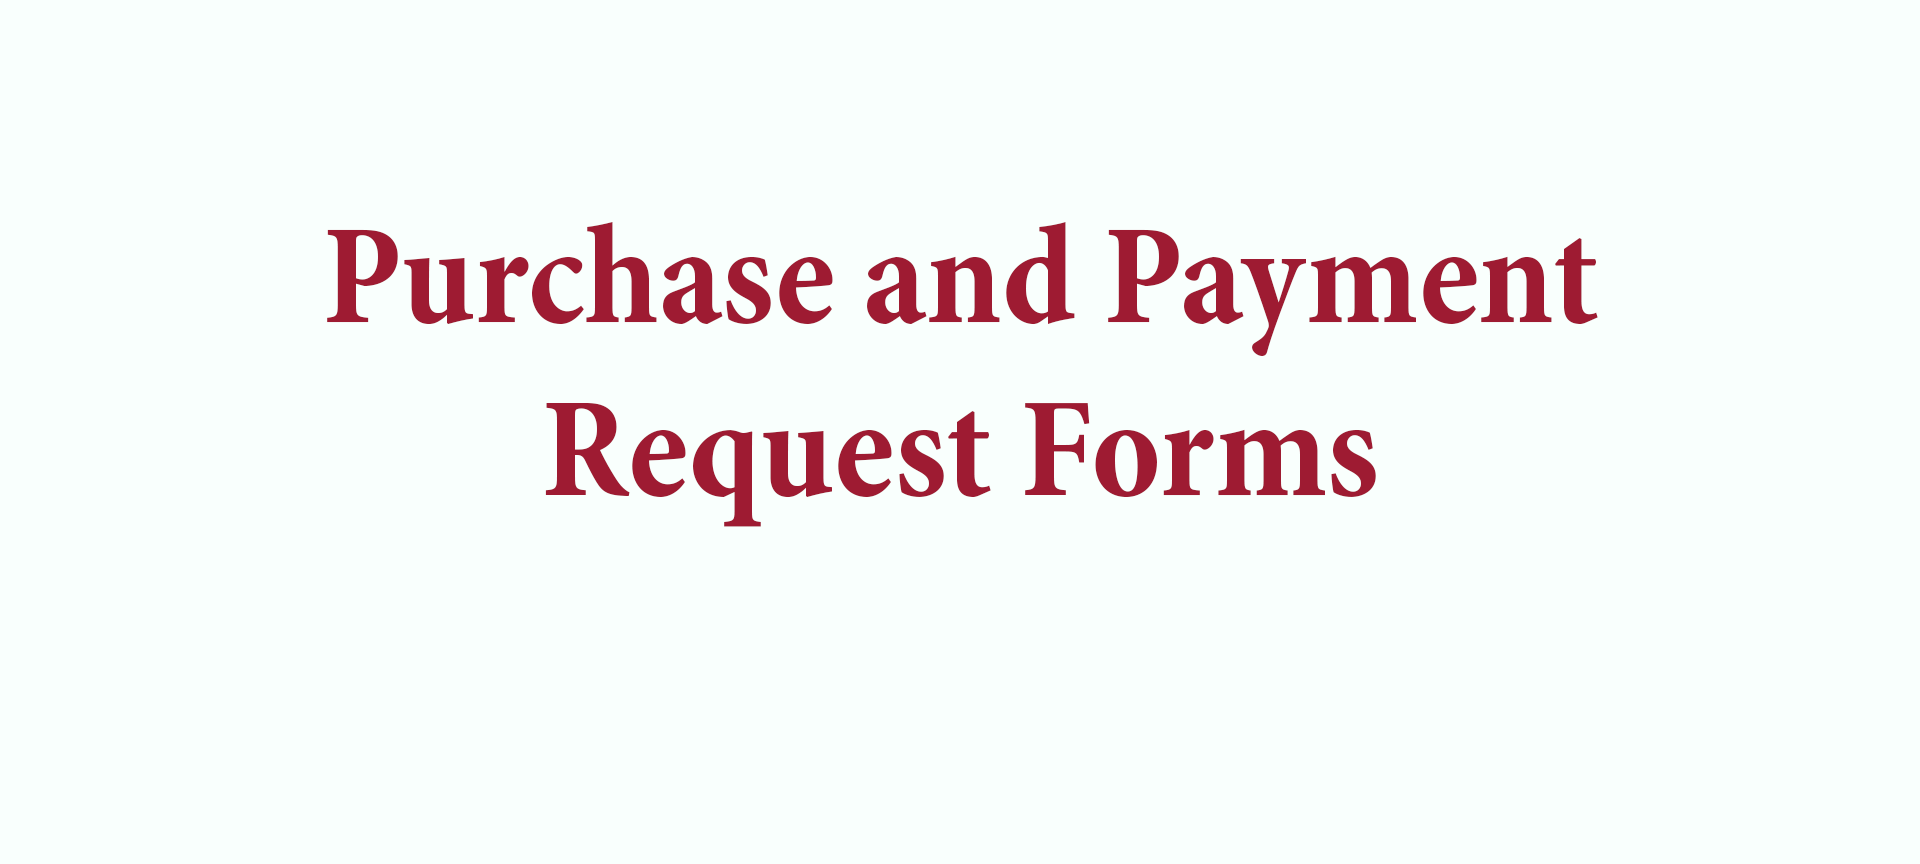 Do you need help with using the Purchase and Payment Request Approval Form?